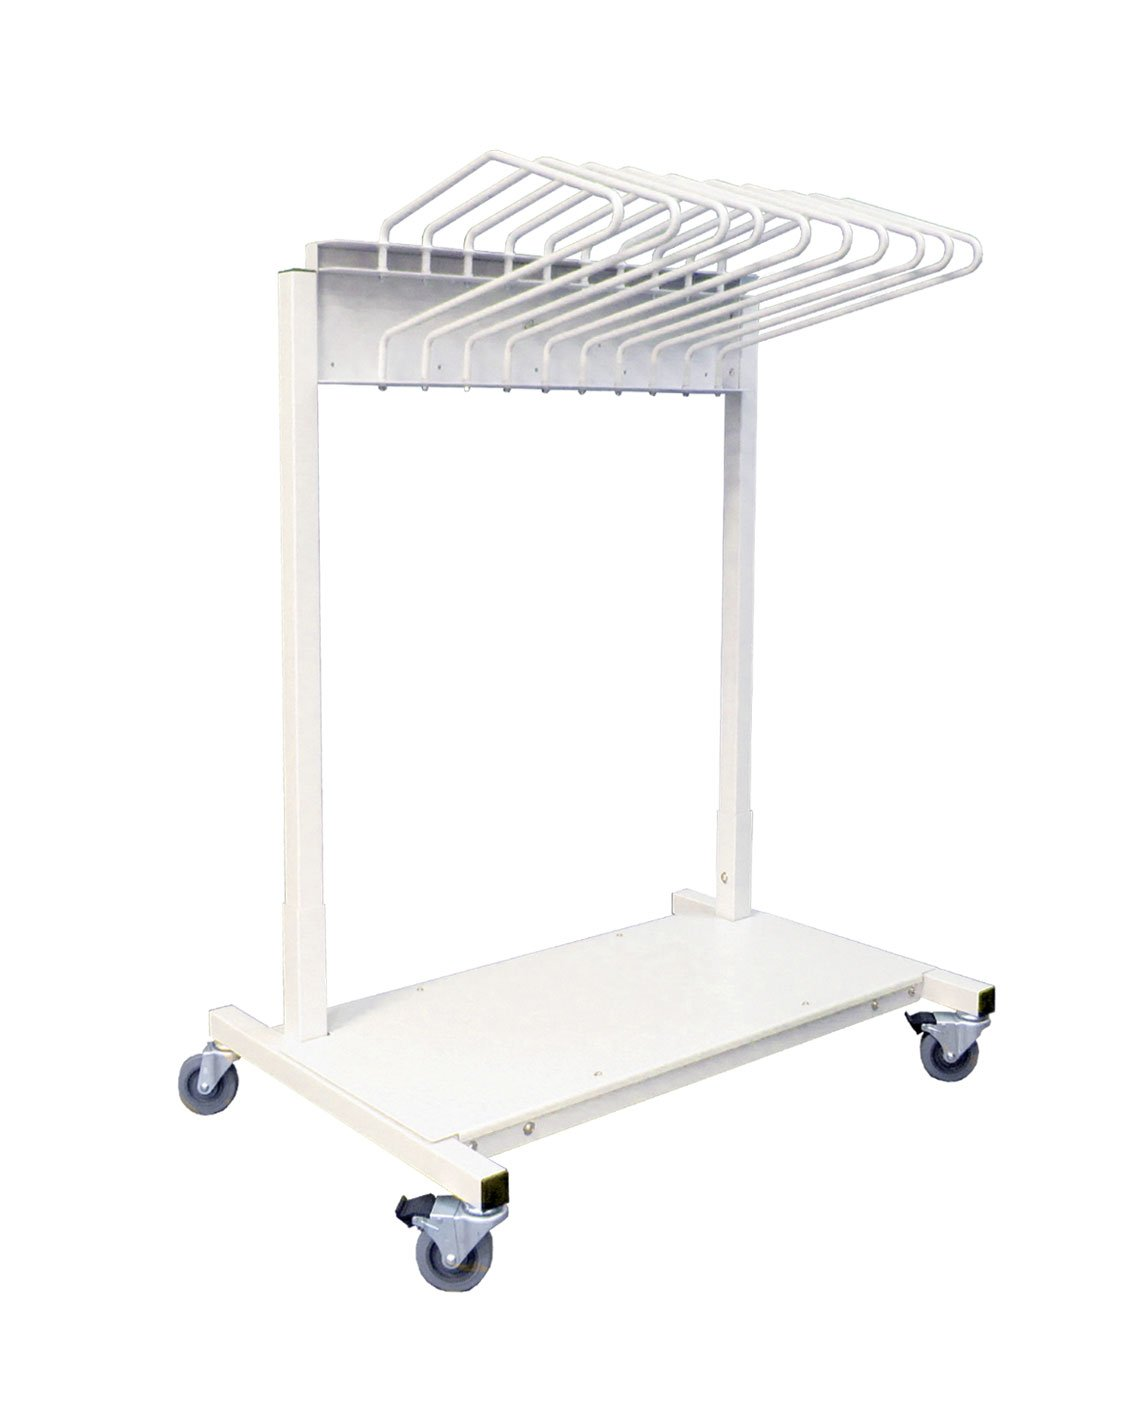 Budget Saver Mobile Apron Rack With 10 Arms – 683427